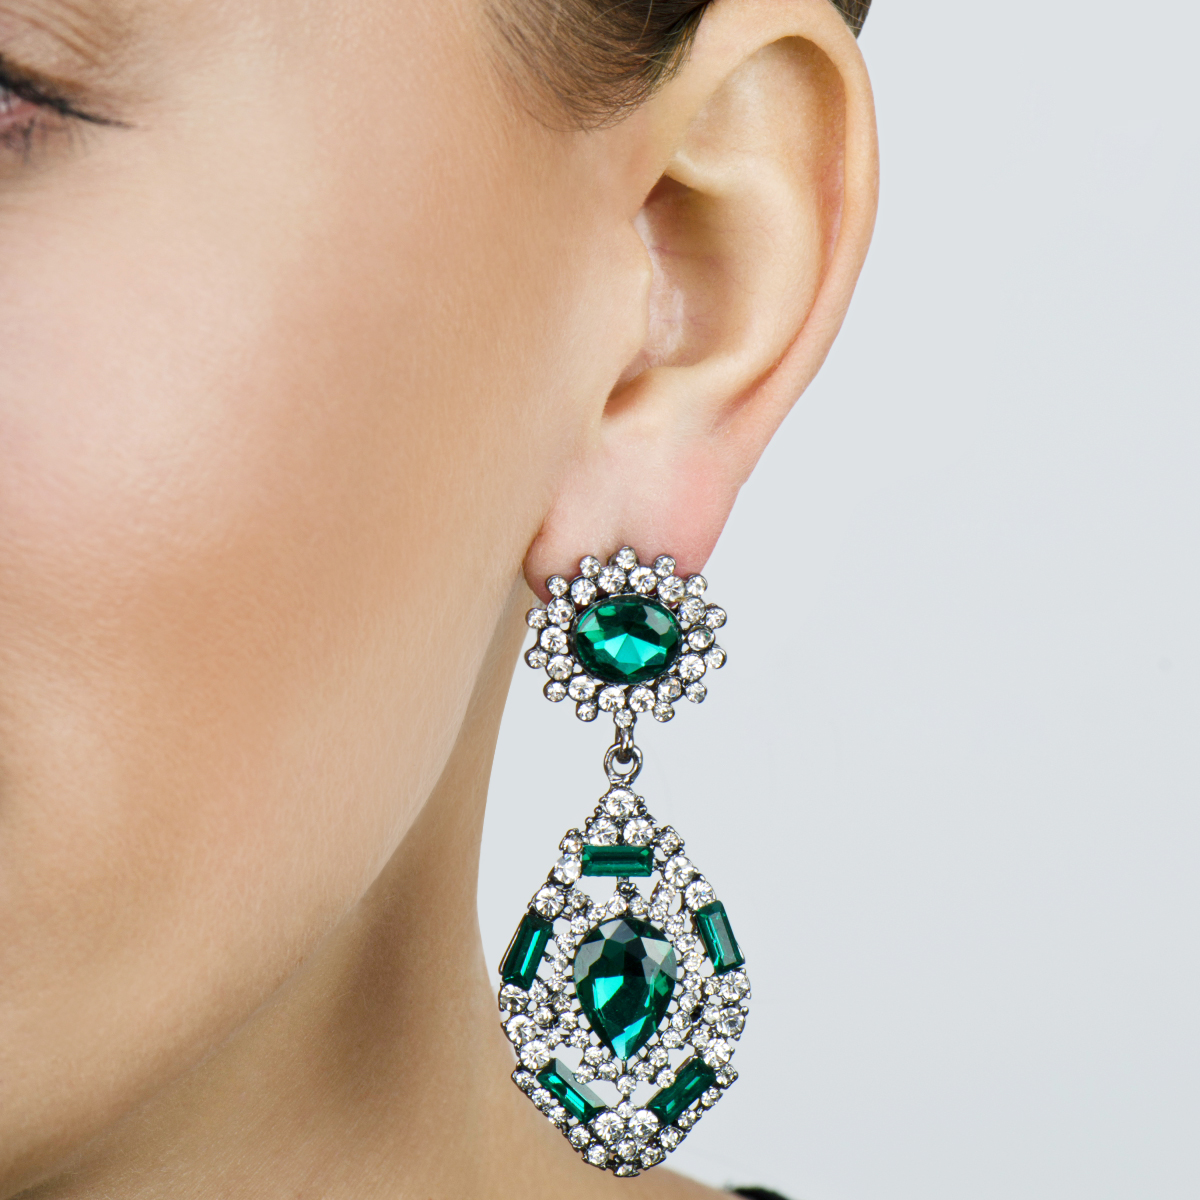 evara-s-fancy-antique-emerald-rhinestone-dangle-earrings-1